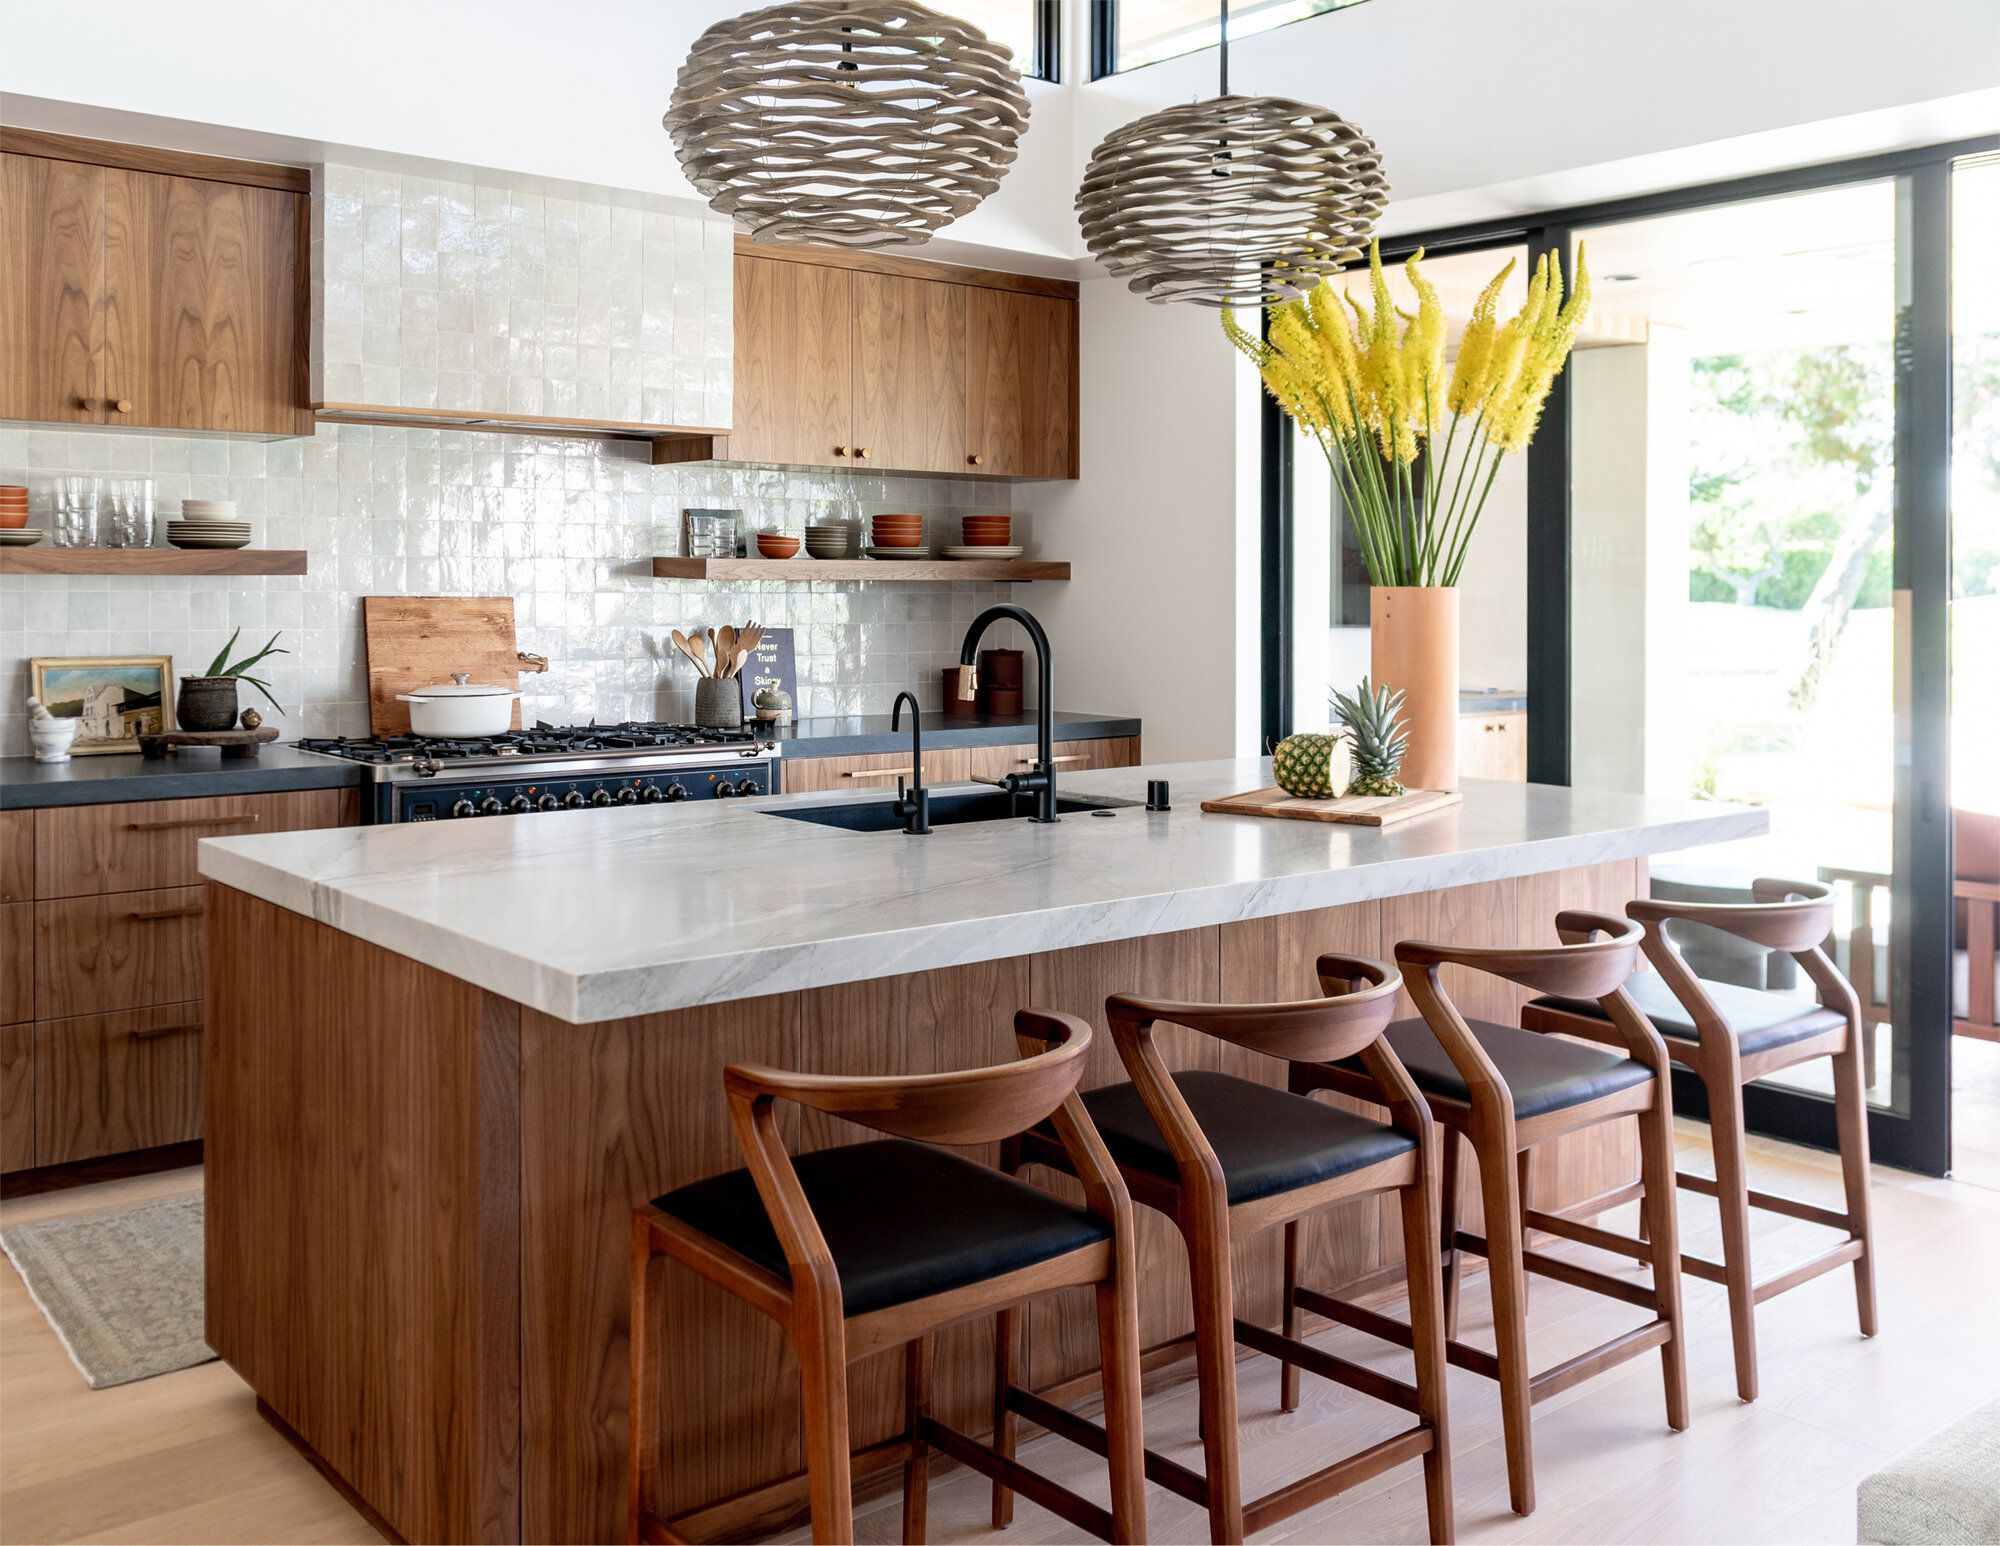 17 Gorgeous Midcentury Modern Kitchen Ideas That Never Go Out Of Style